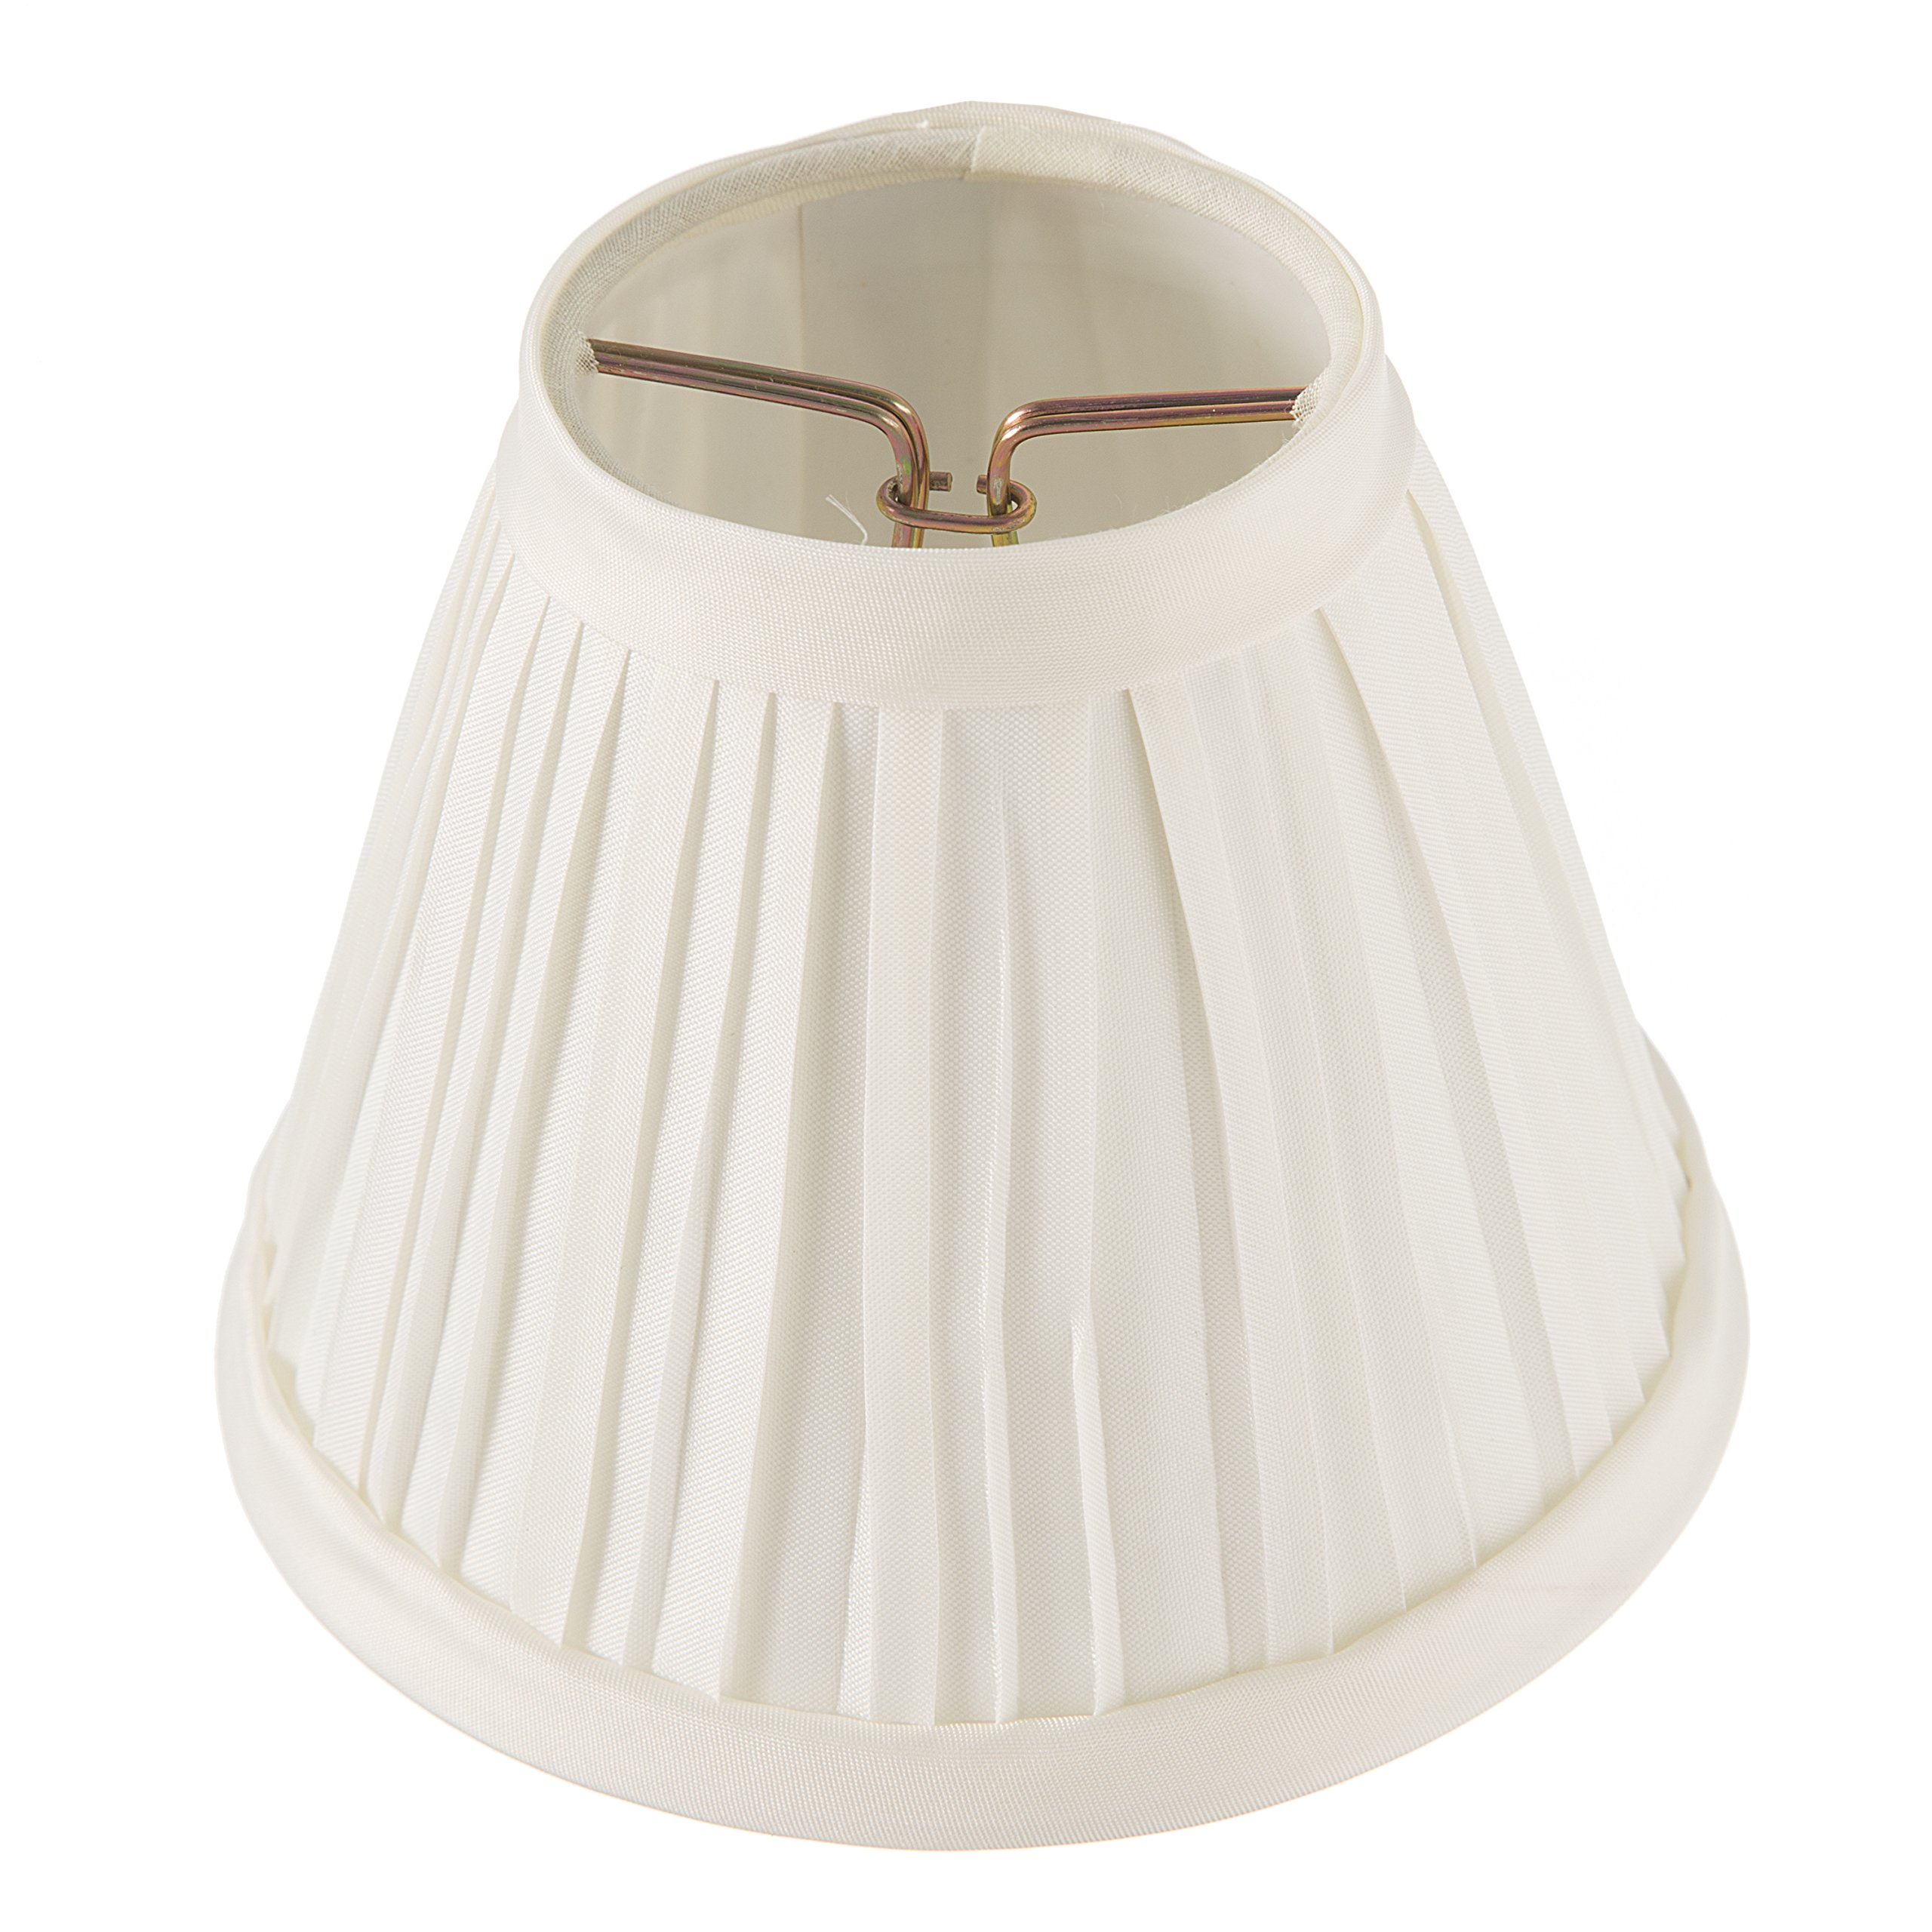 Darice Pleated Cloth Covered Lamp Shade, 2.5-Inch by 4-Inch by 5-Inch, Ivory